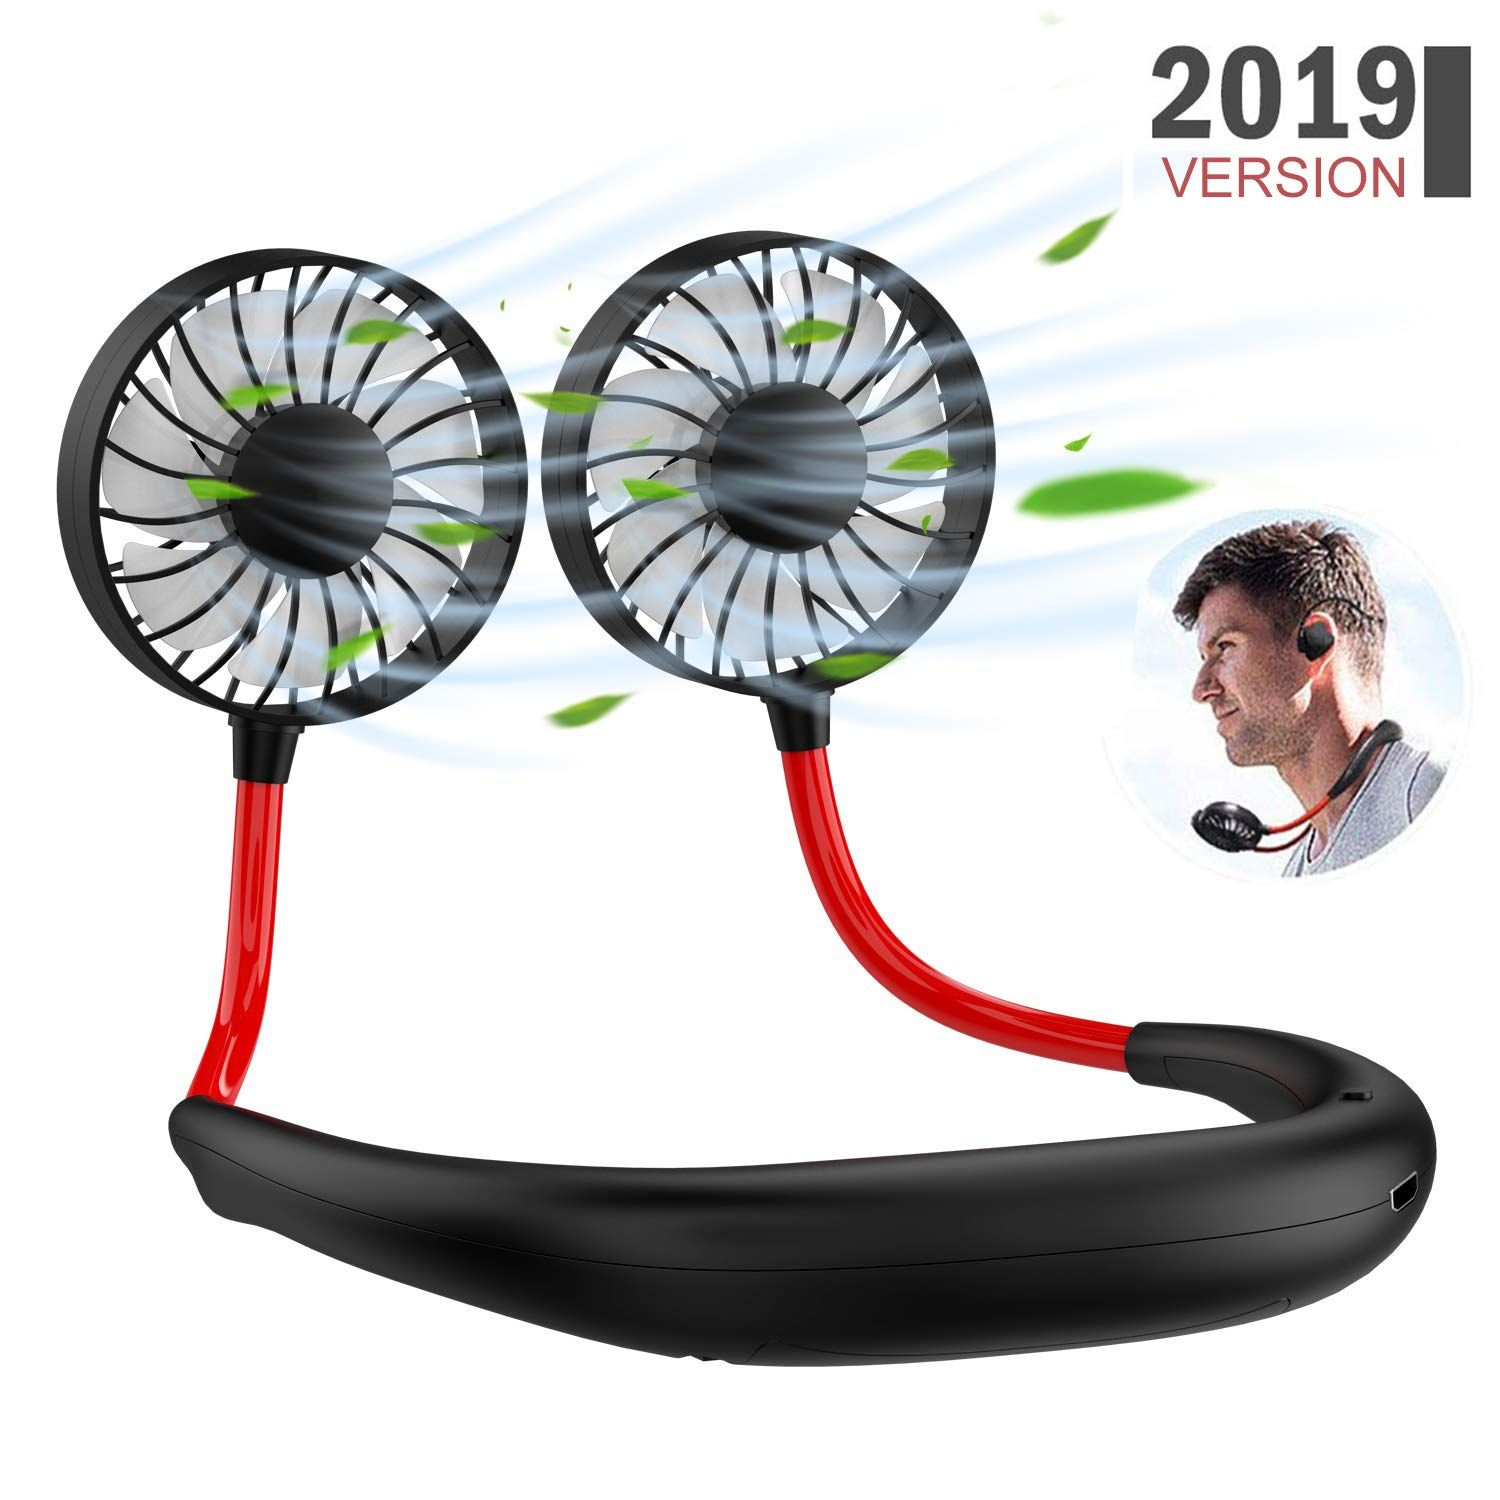 Portable Sports Neck Fan, 1800mAh USB Rechargeable Hands-Free Mini Personal Desktop Fan, 3 Wind Speeds, 7 Blades, 360 Degree Free Rotation & Wearable for Camping Traveling Office